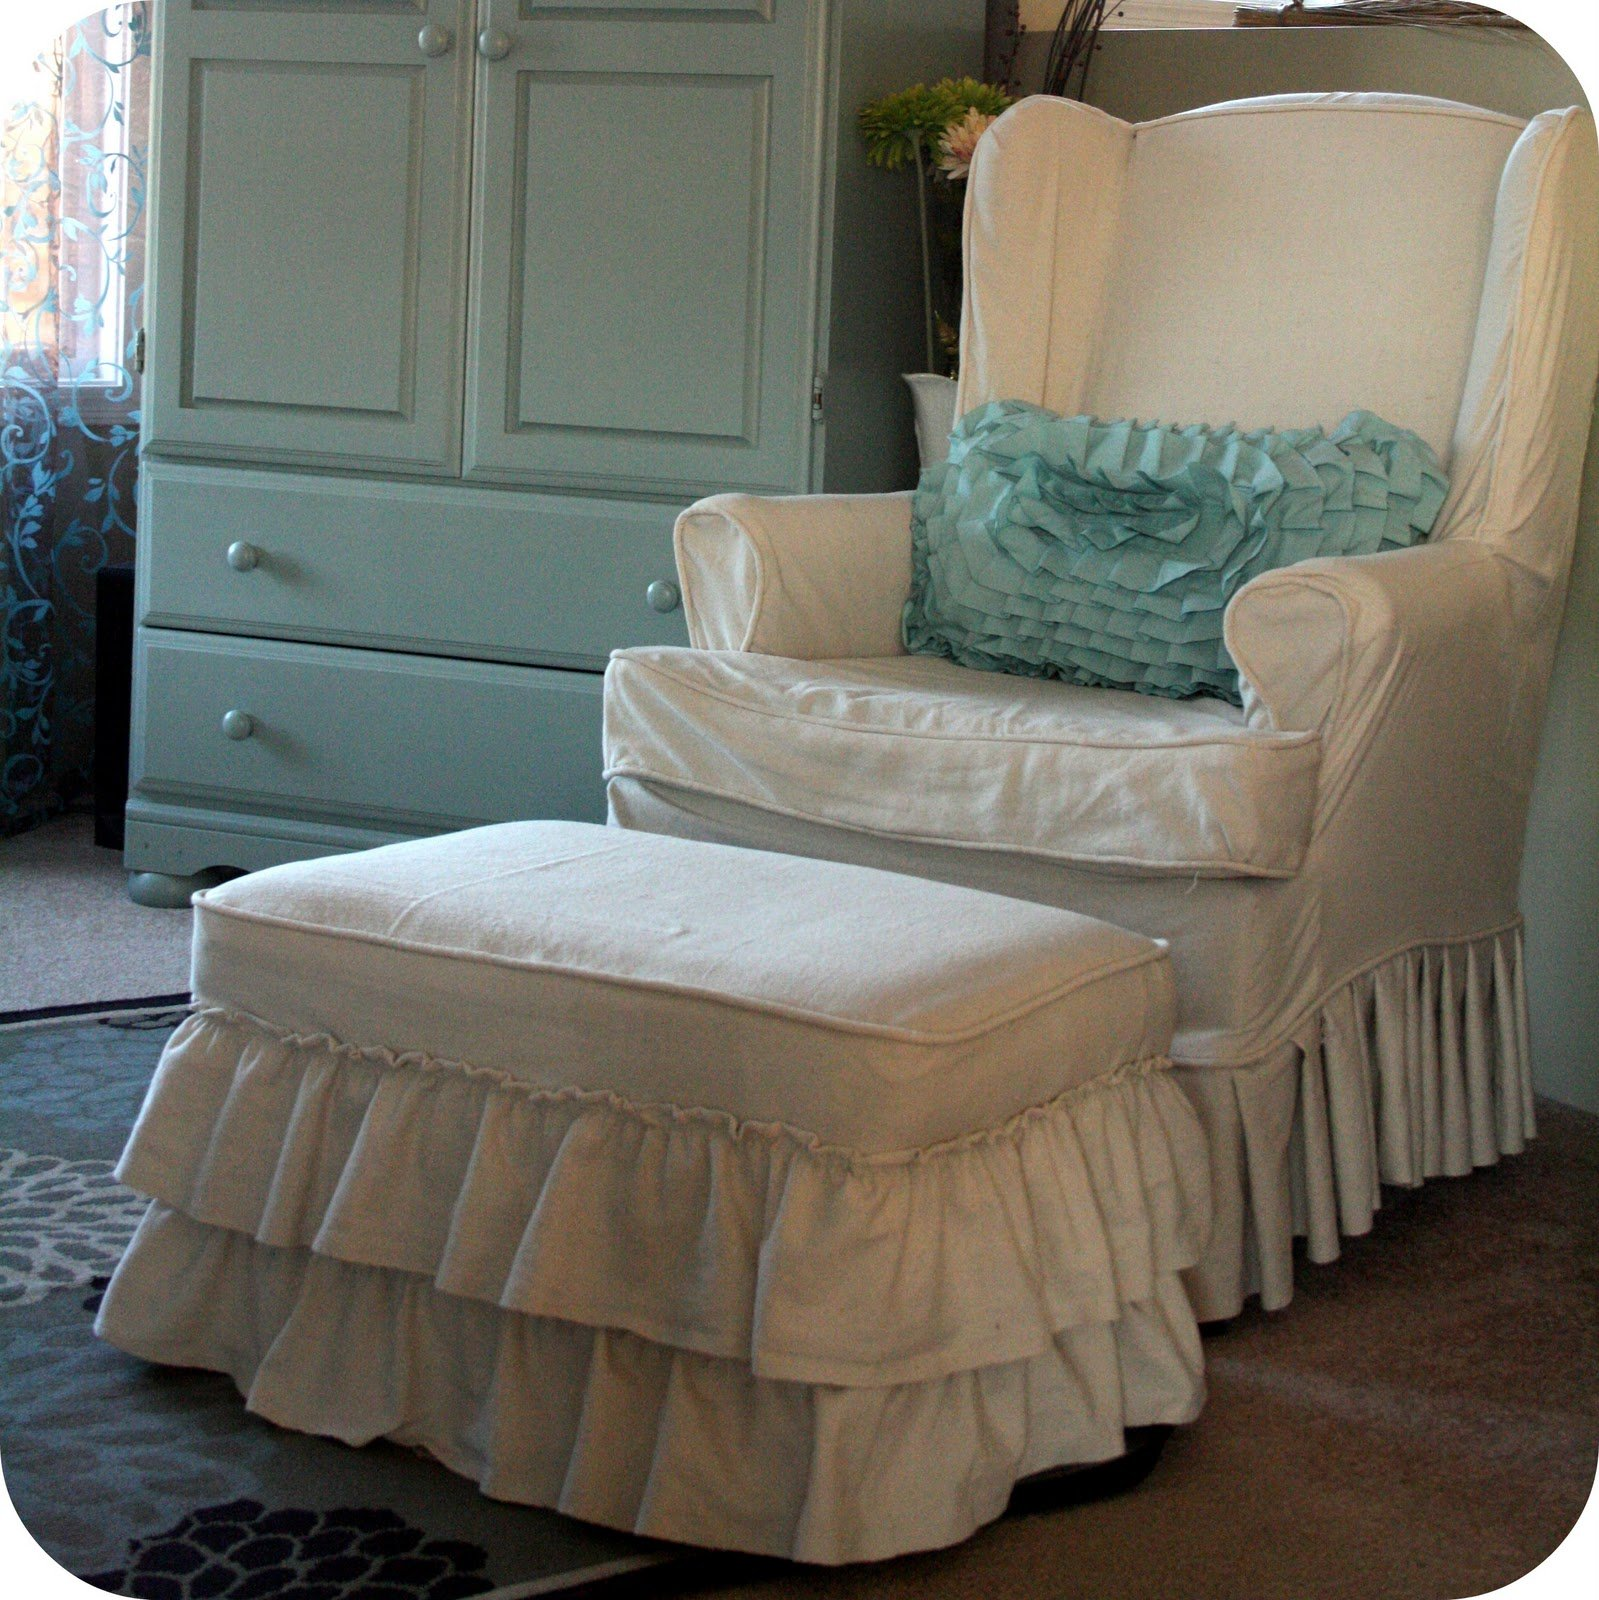 Slipcovers For Chairs And Ottomans Home Furniture Design